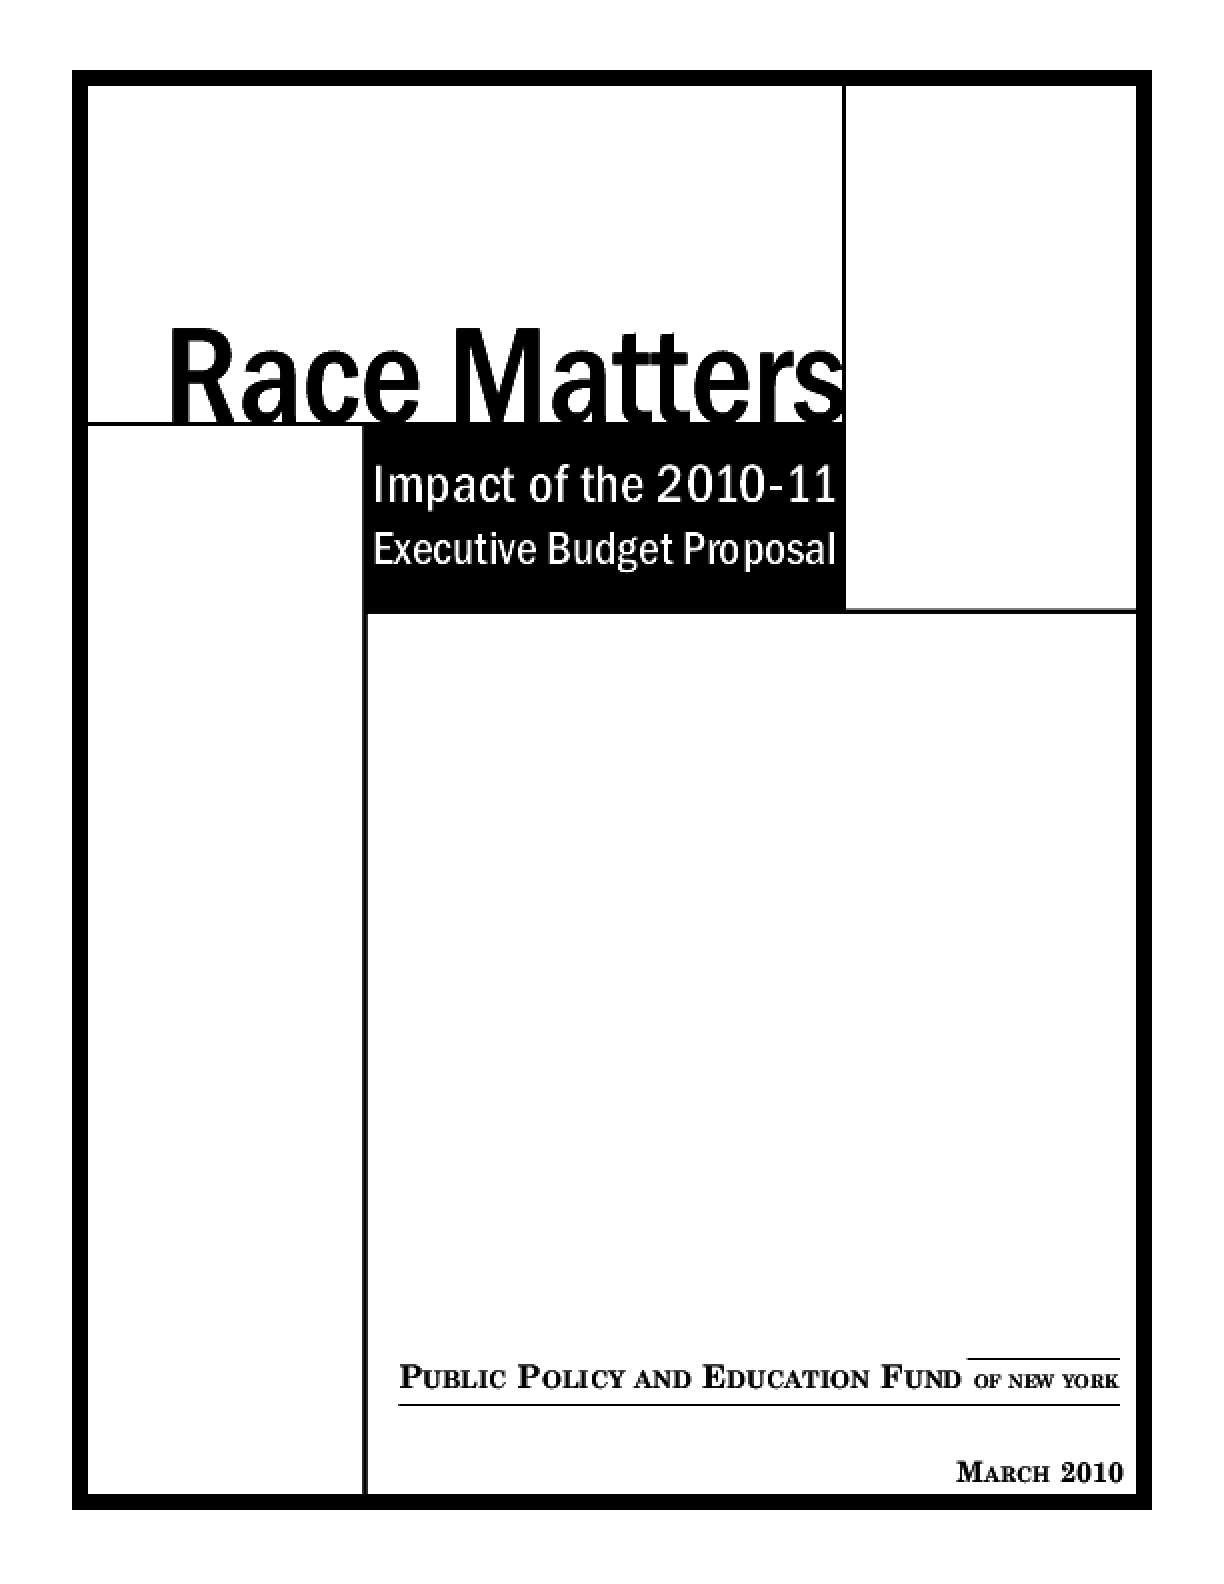 Race Matters: Impact of the 2010-11 Executive Budget Proposal